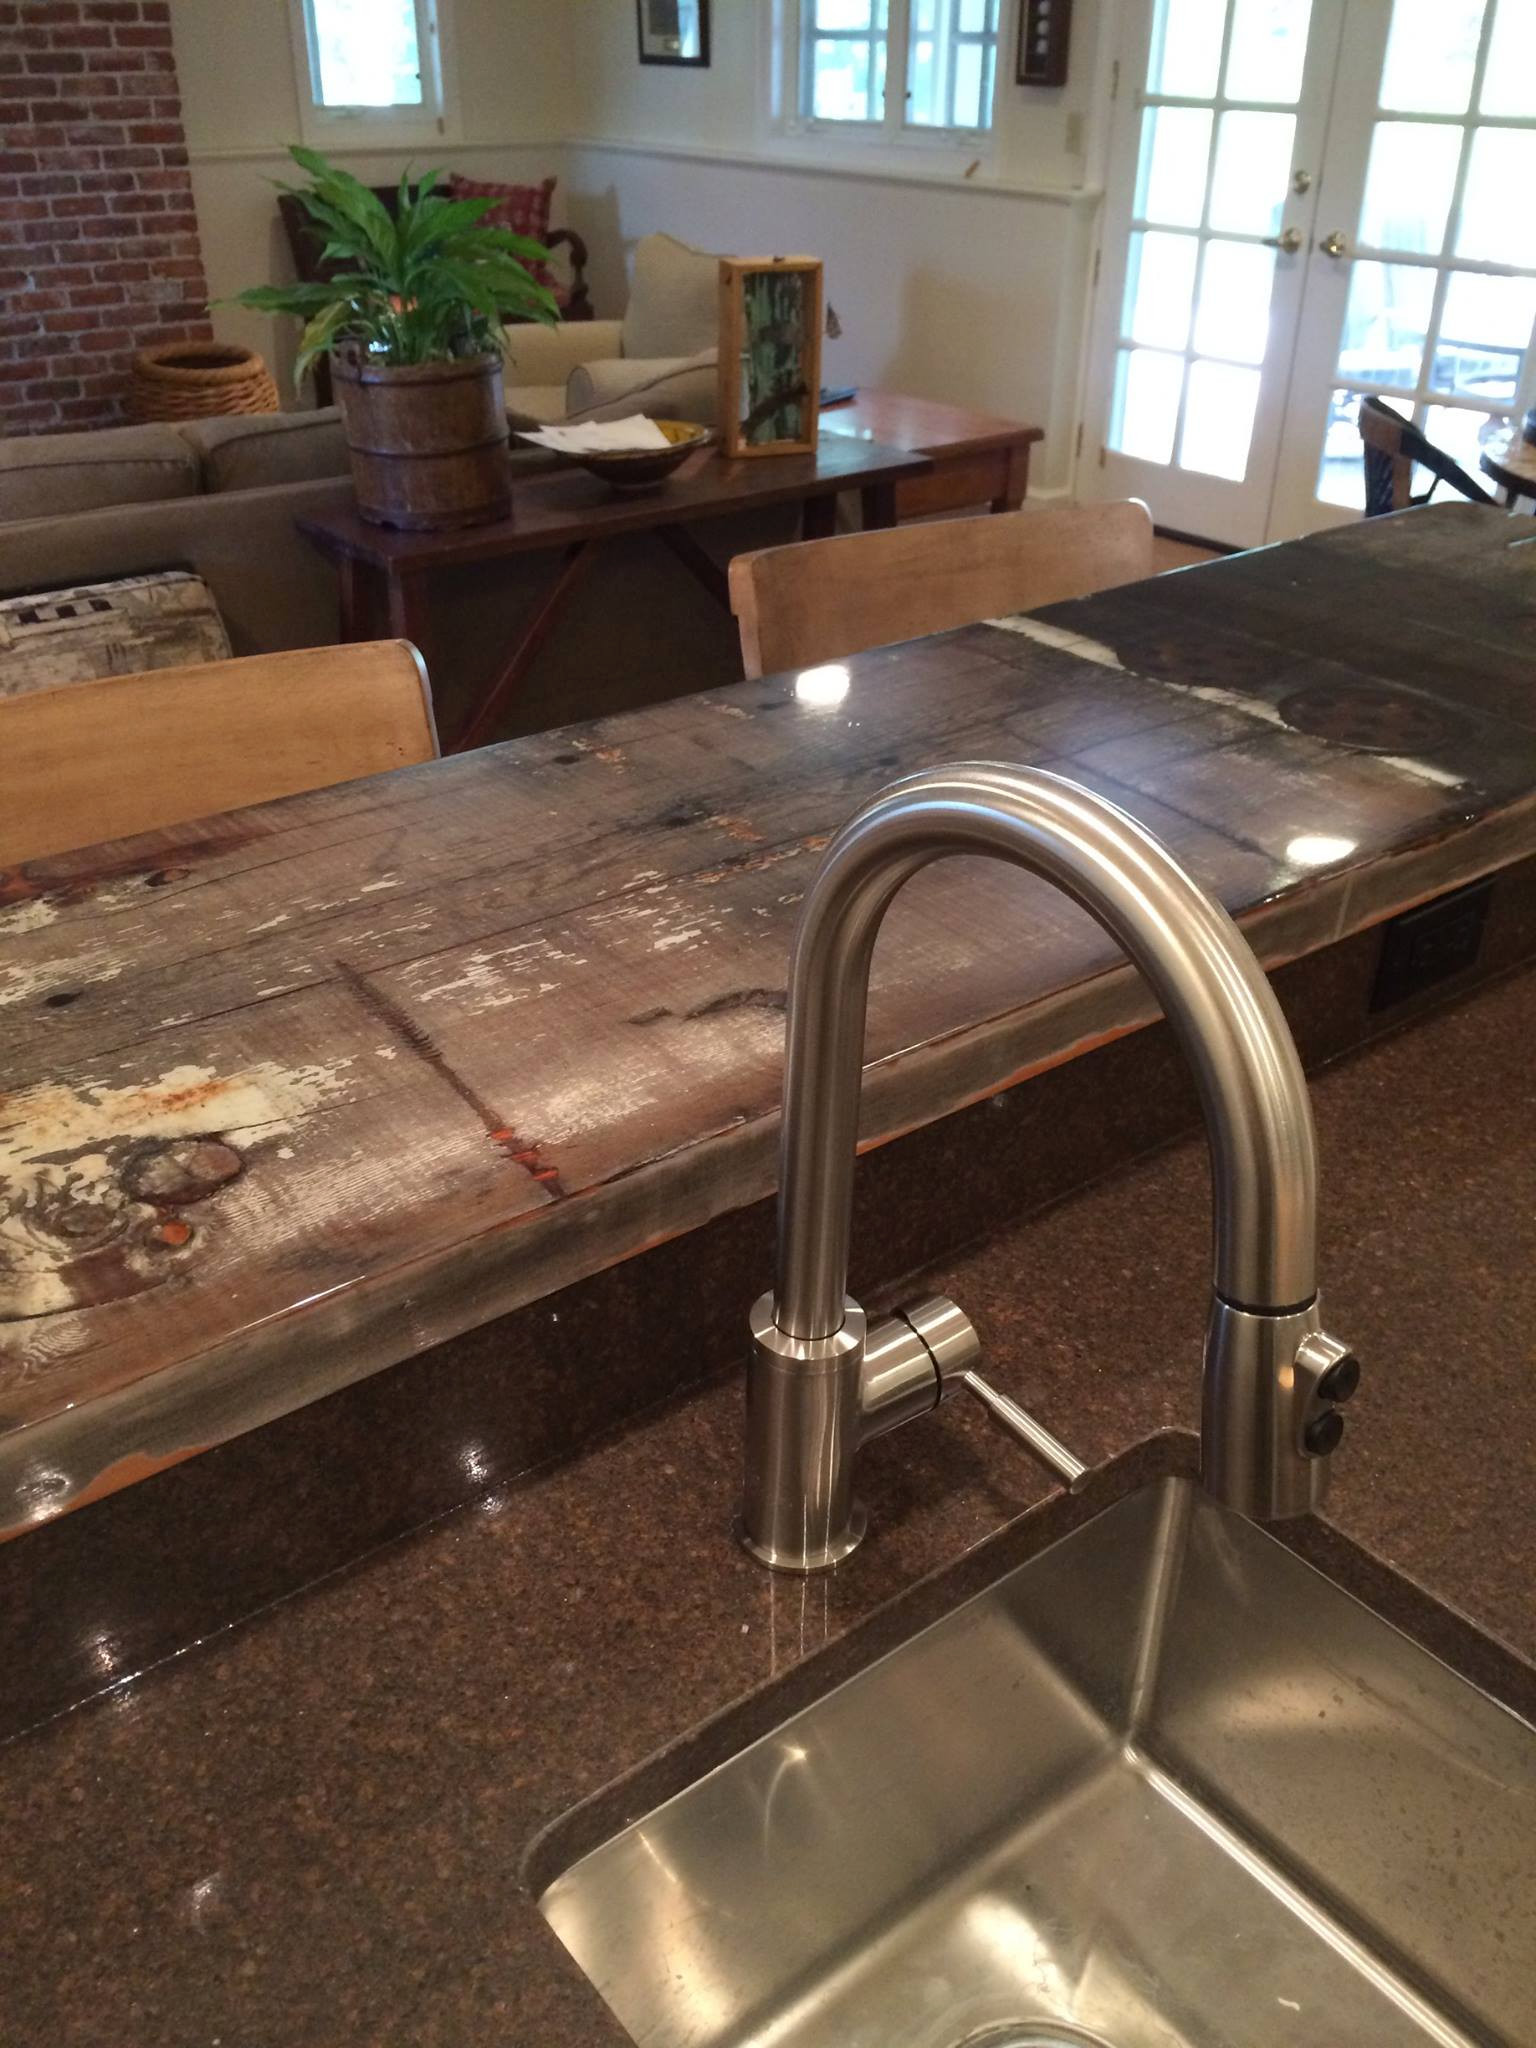 Custom Installation - Wet-bar counter-top by IGL Recycled Timbers. Early 1900's